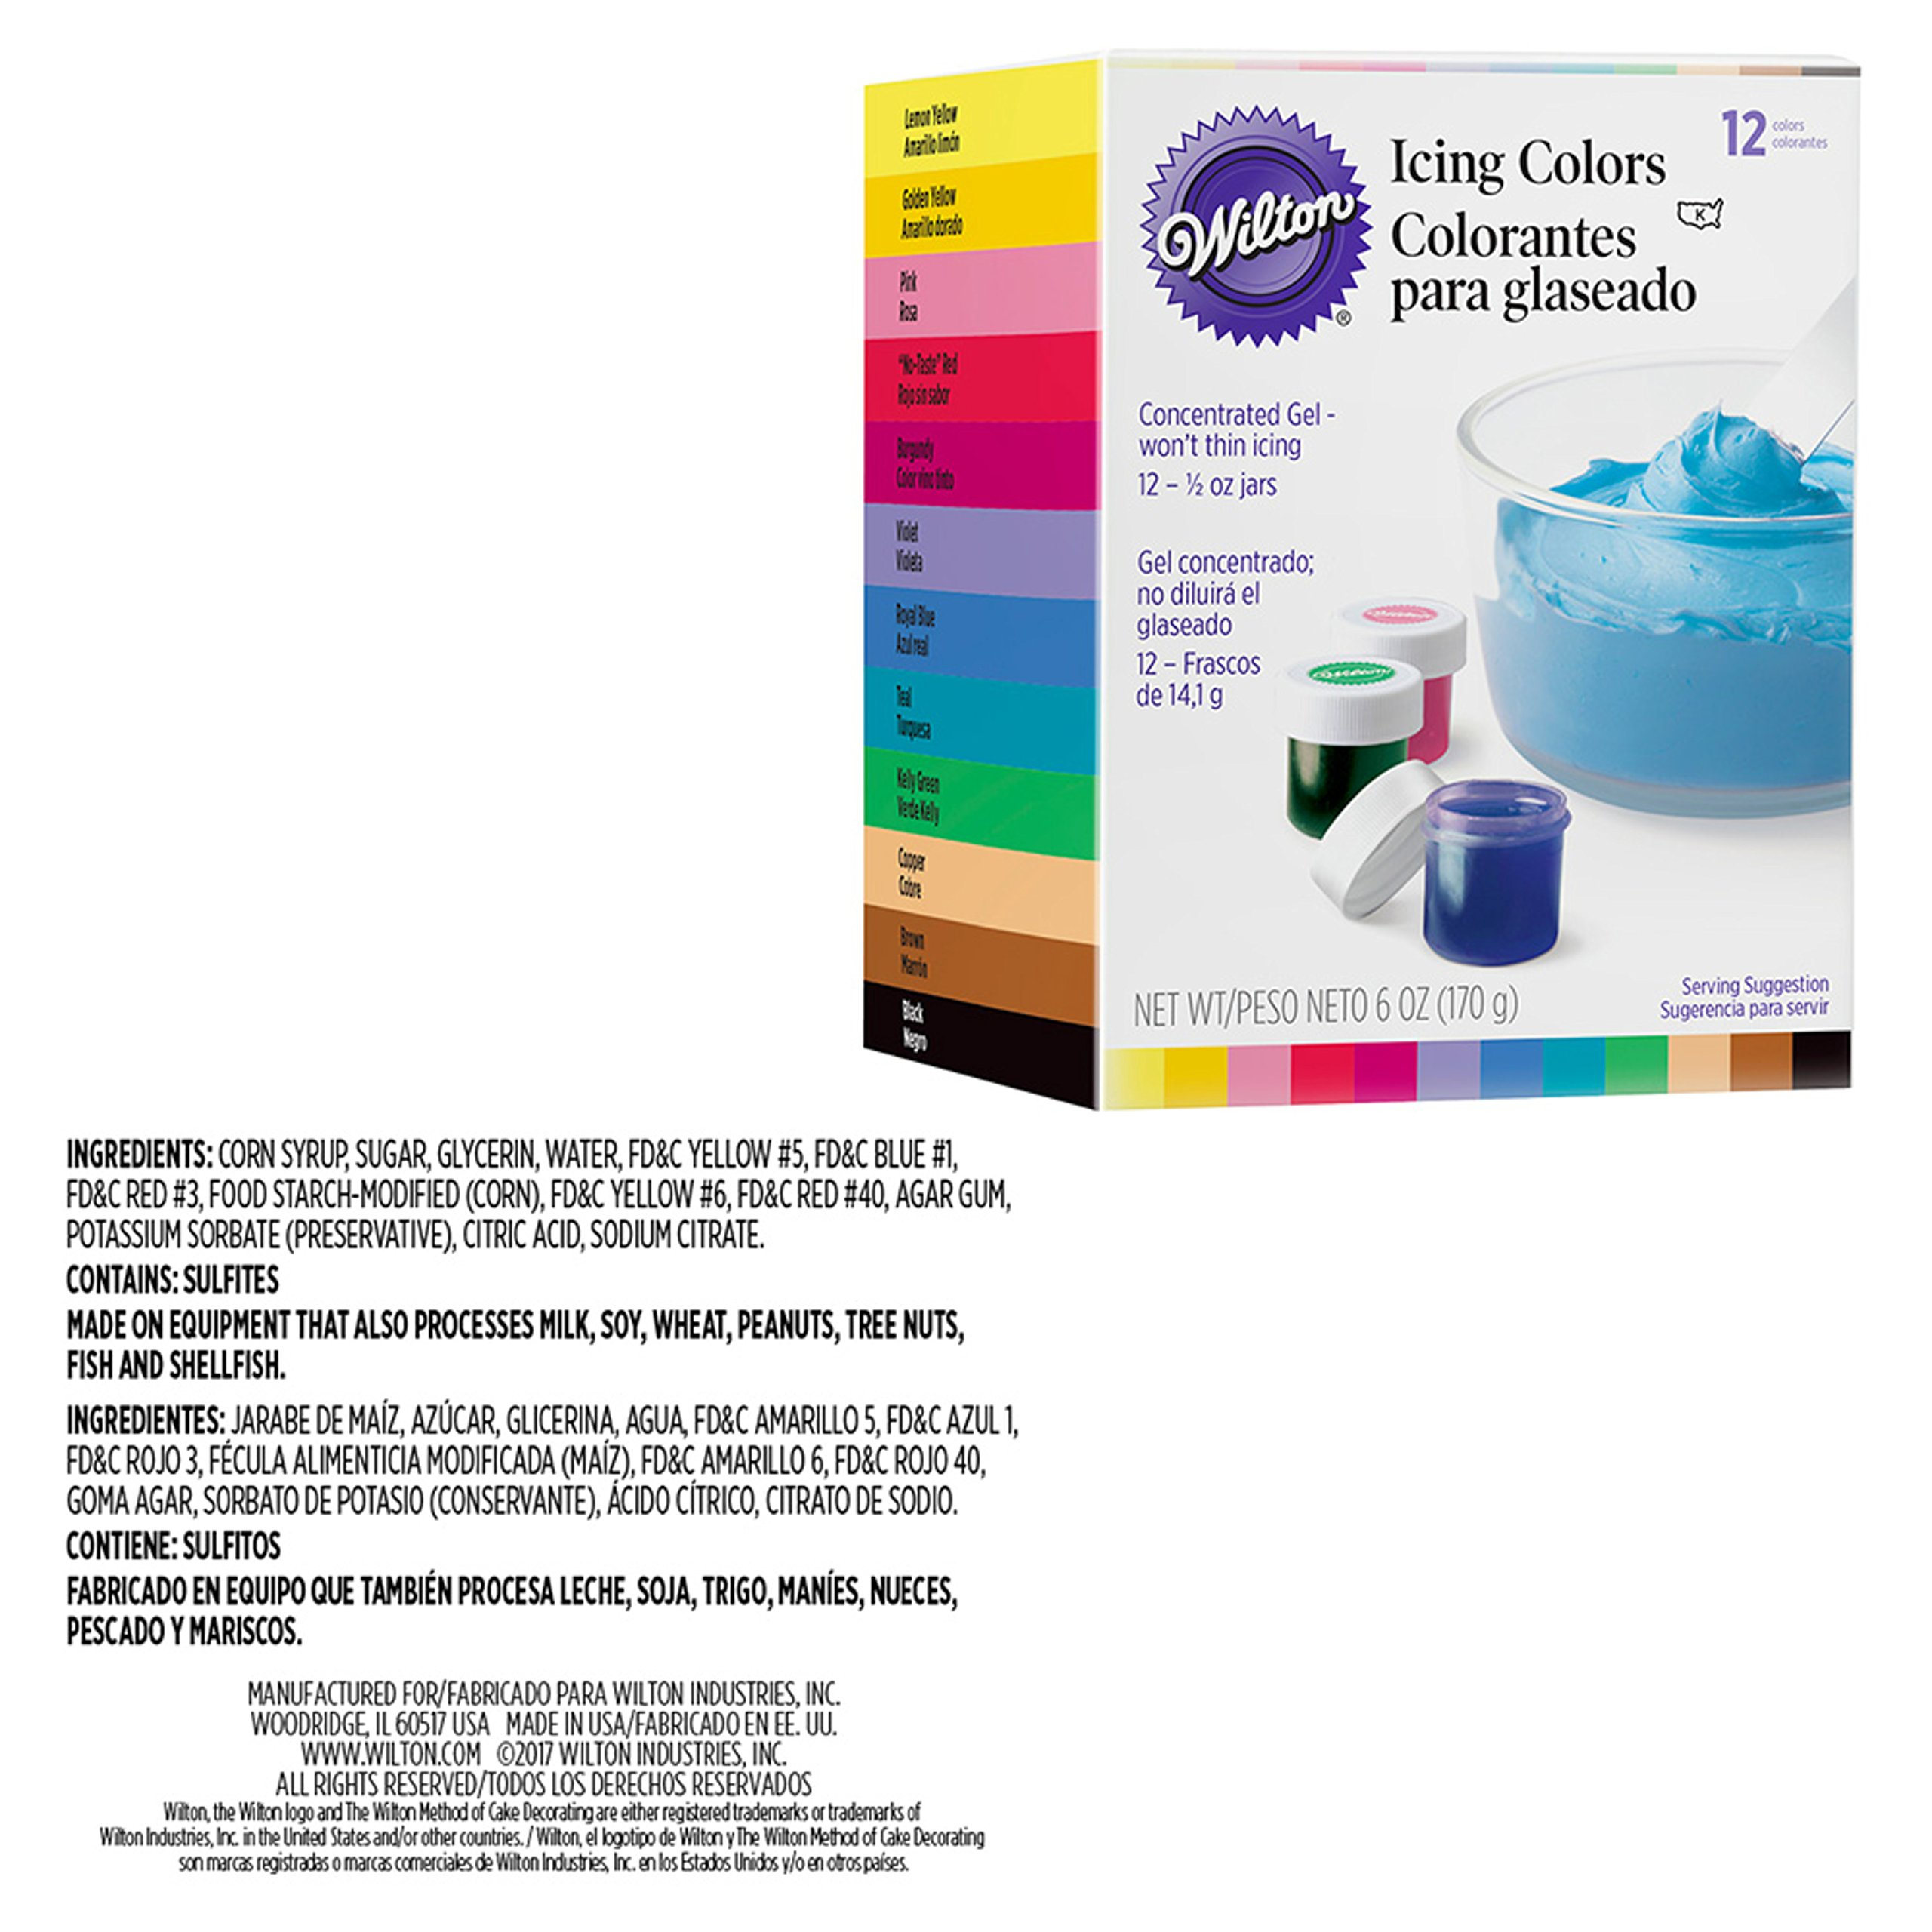 Wilton Deluxe Cake Decorating Tip Set, 52-Piece - 12 Gel-Based Icing Colors, 12 Count Package of 16-inch Disposable Decorating Bags and 29-Piece Deluxe Tip Set with case by Wilton (Image #2)